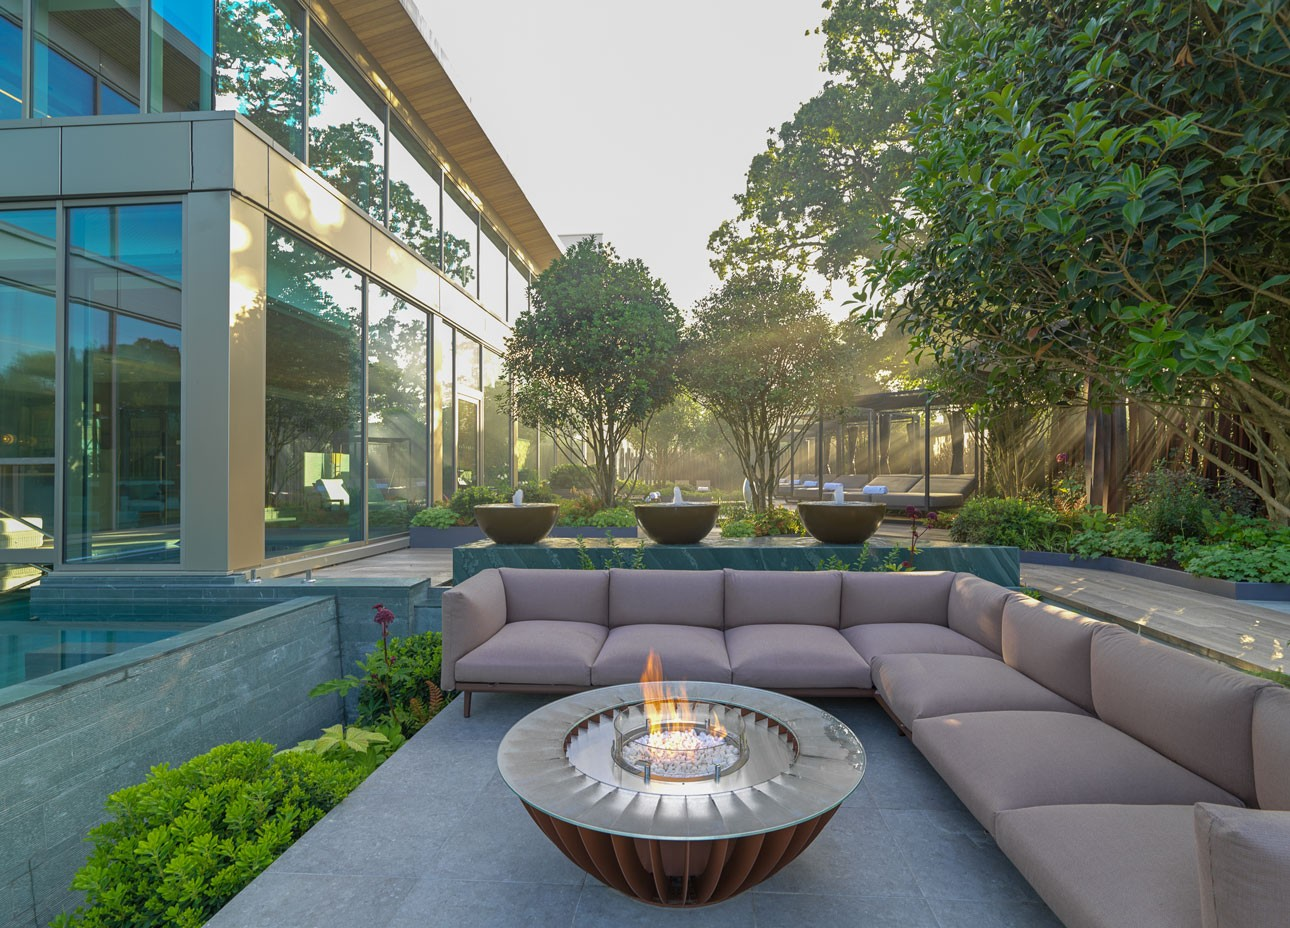 Bespoke firebowl and corner sofa beside luxury spa slate lined swimming pool in front of custom designed water feature